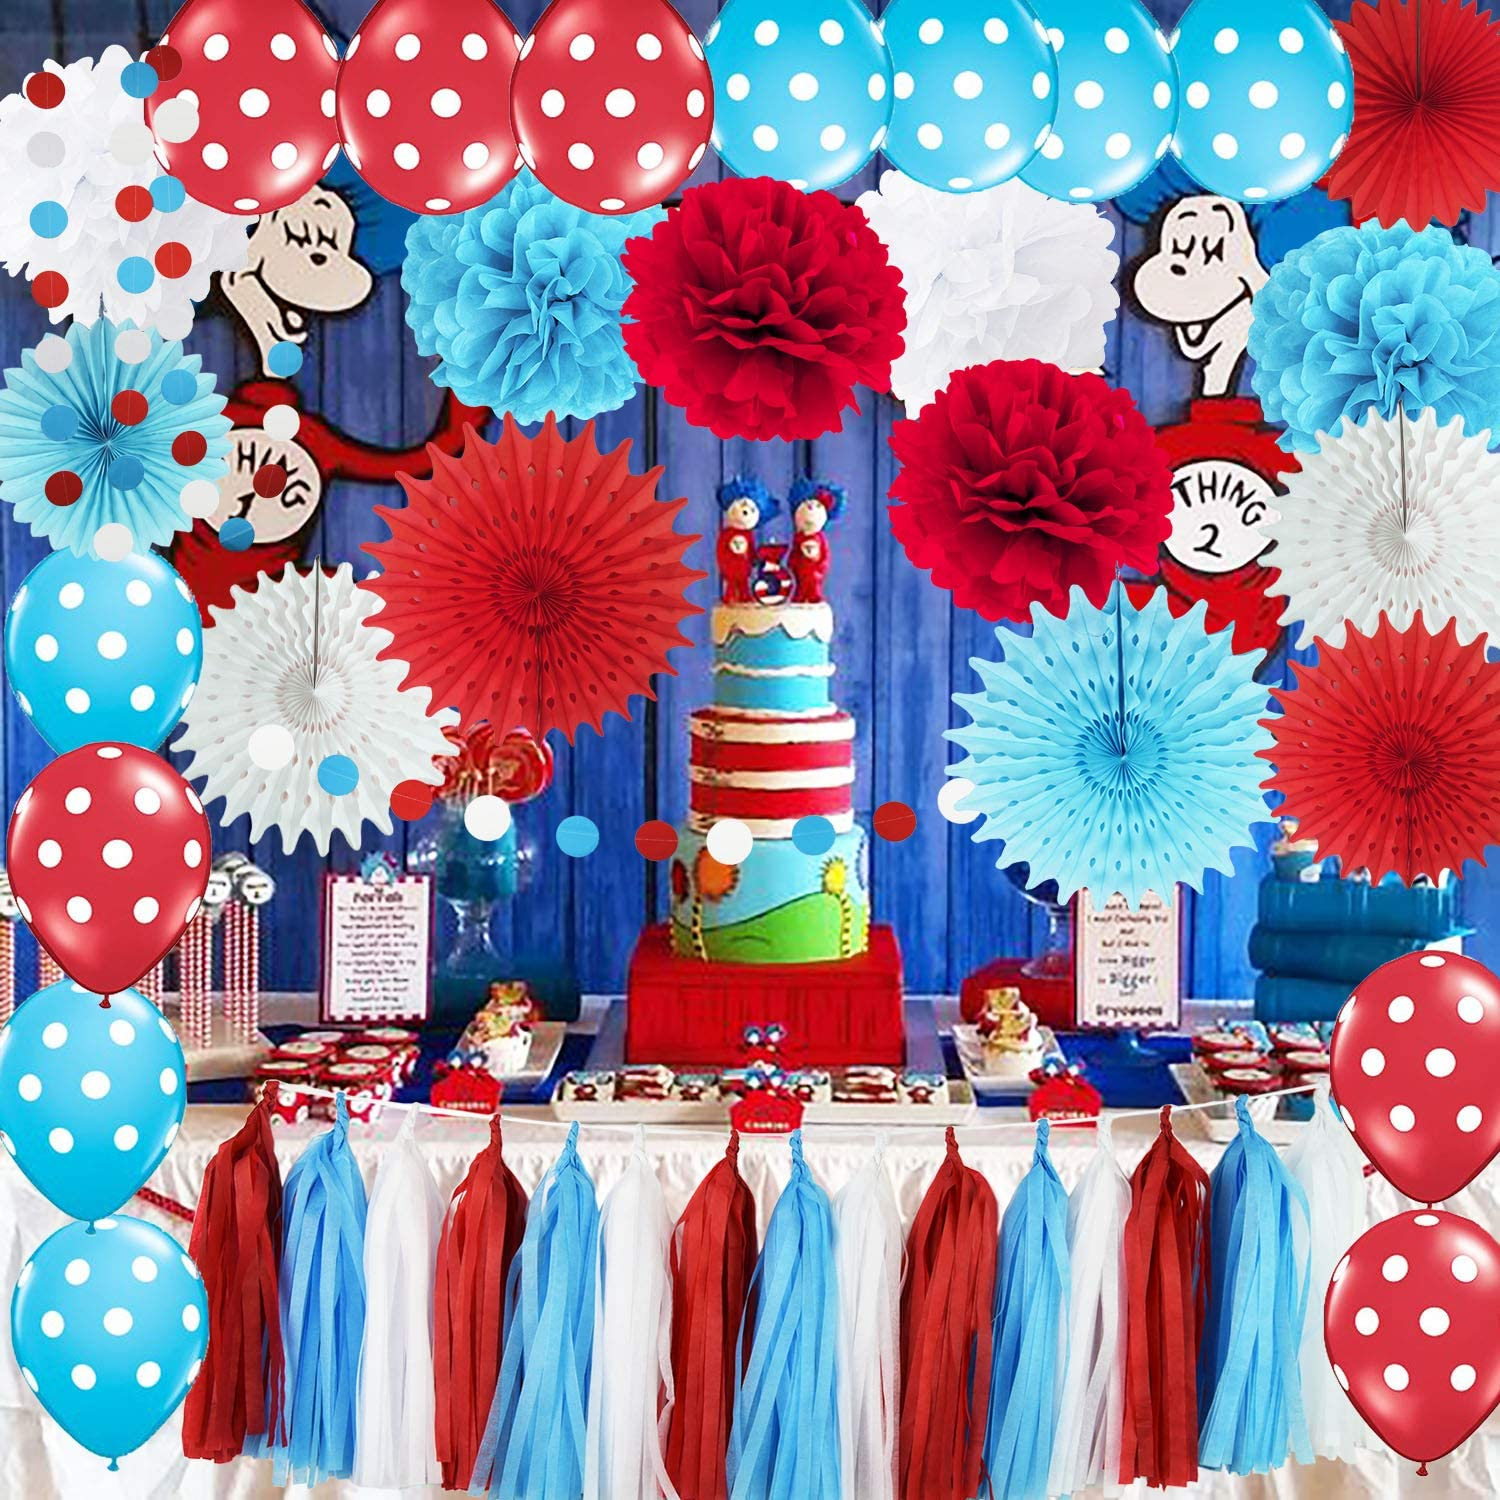 Dr Seuss Birthday Party Decorations from images-na.ssl-images-amazon.com